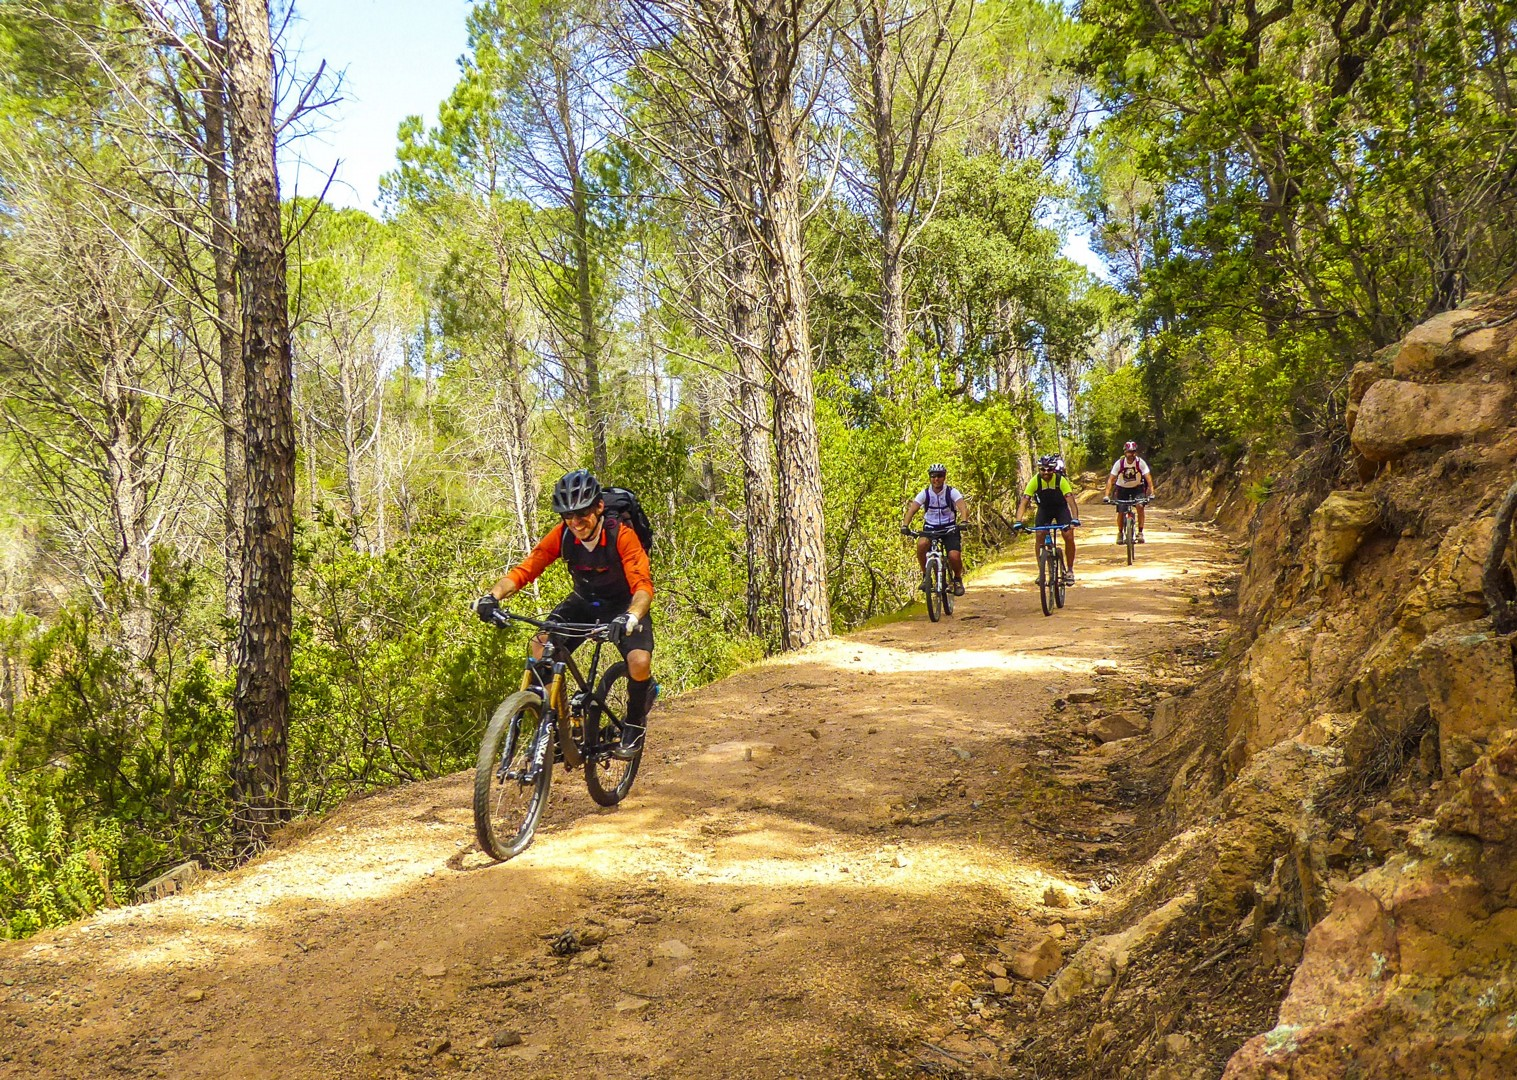 group-fun-mountain-biking-tour-sardinia-italy.jpg - Sardinia - Coast to Coast - Mountain Biking